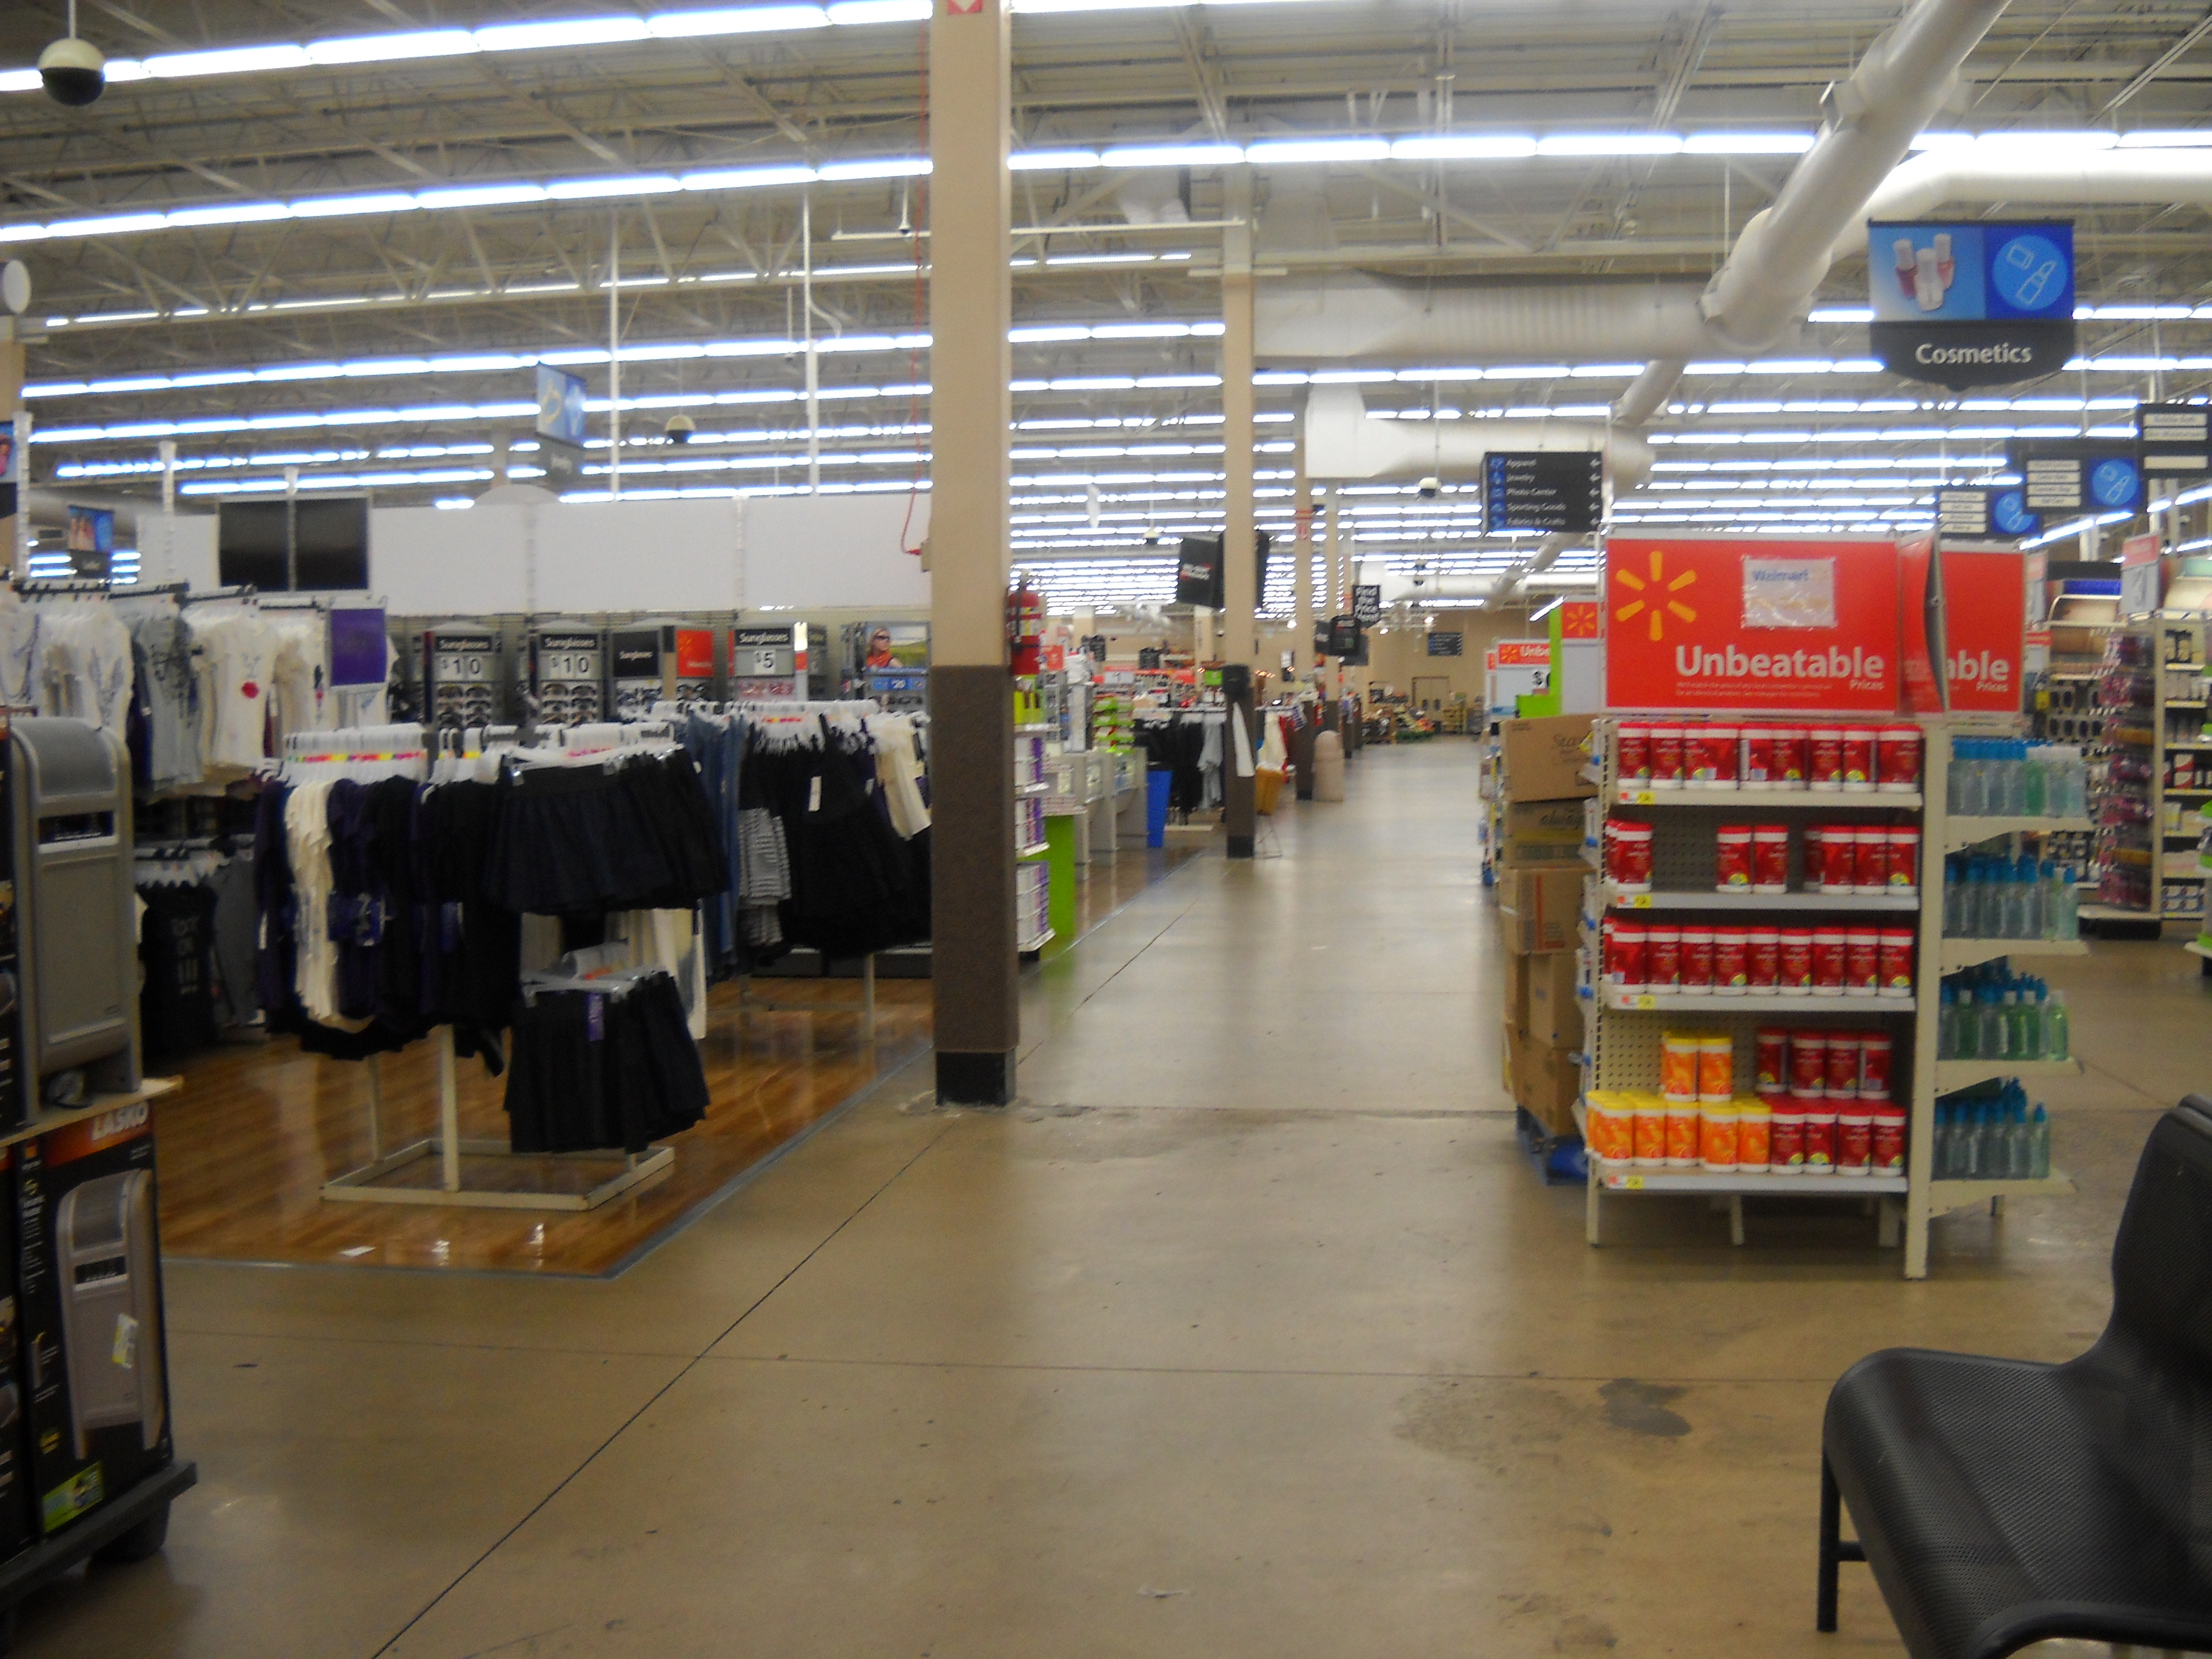 FileInsideWalmartWestPlainsJPG Wikimedia Commons